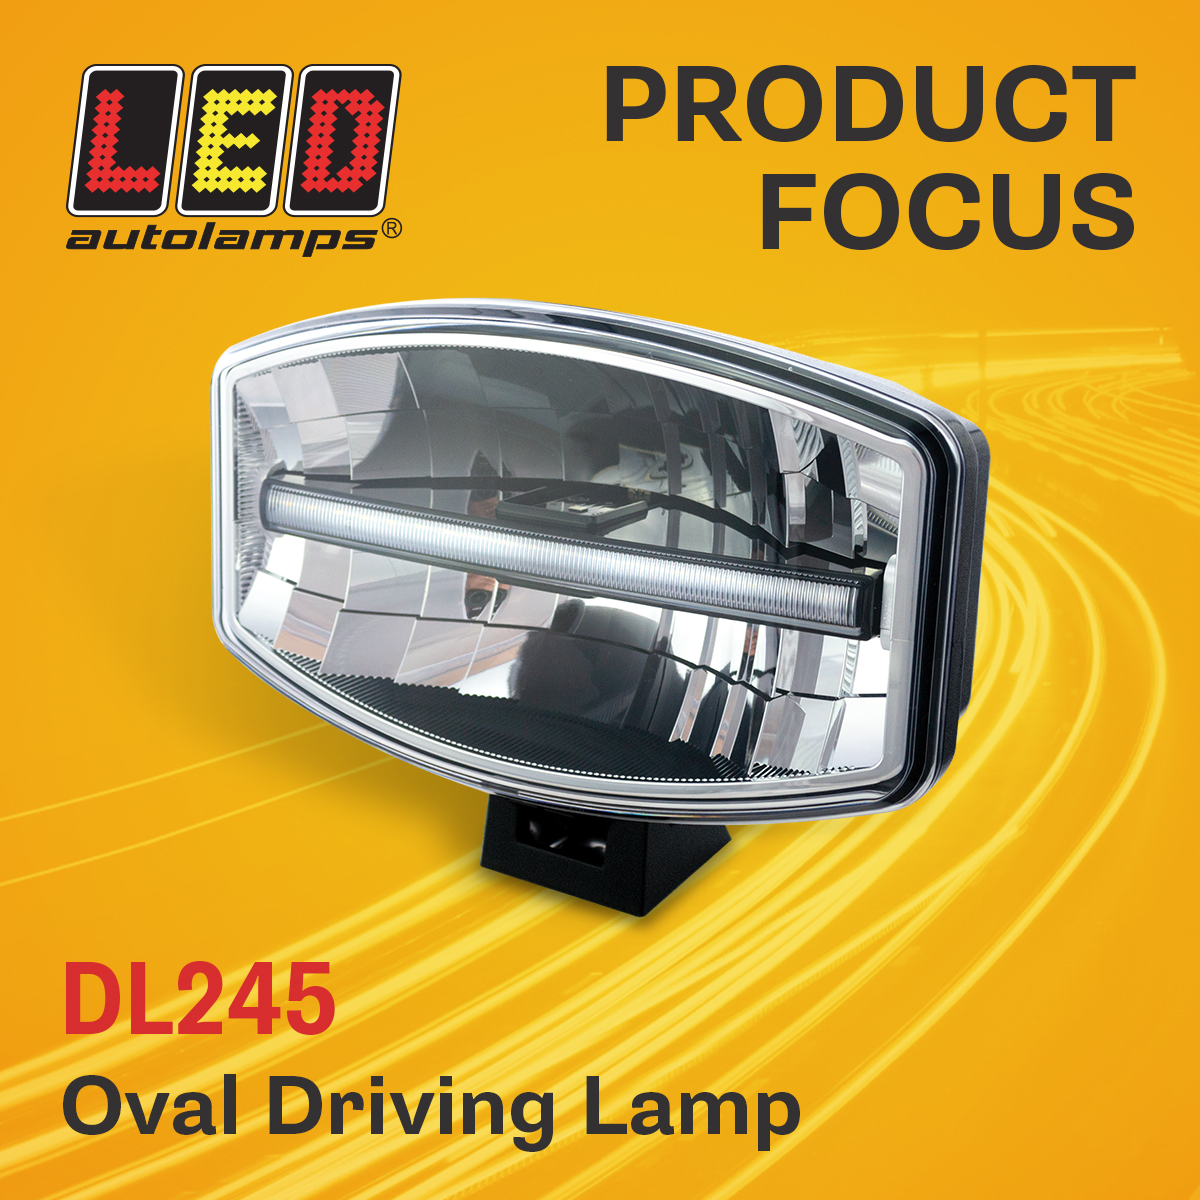 Product Focus – DL245 Oval Driving Lamp